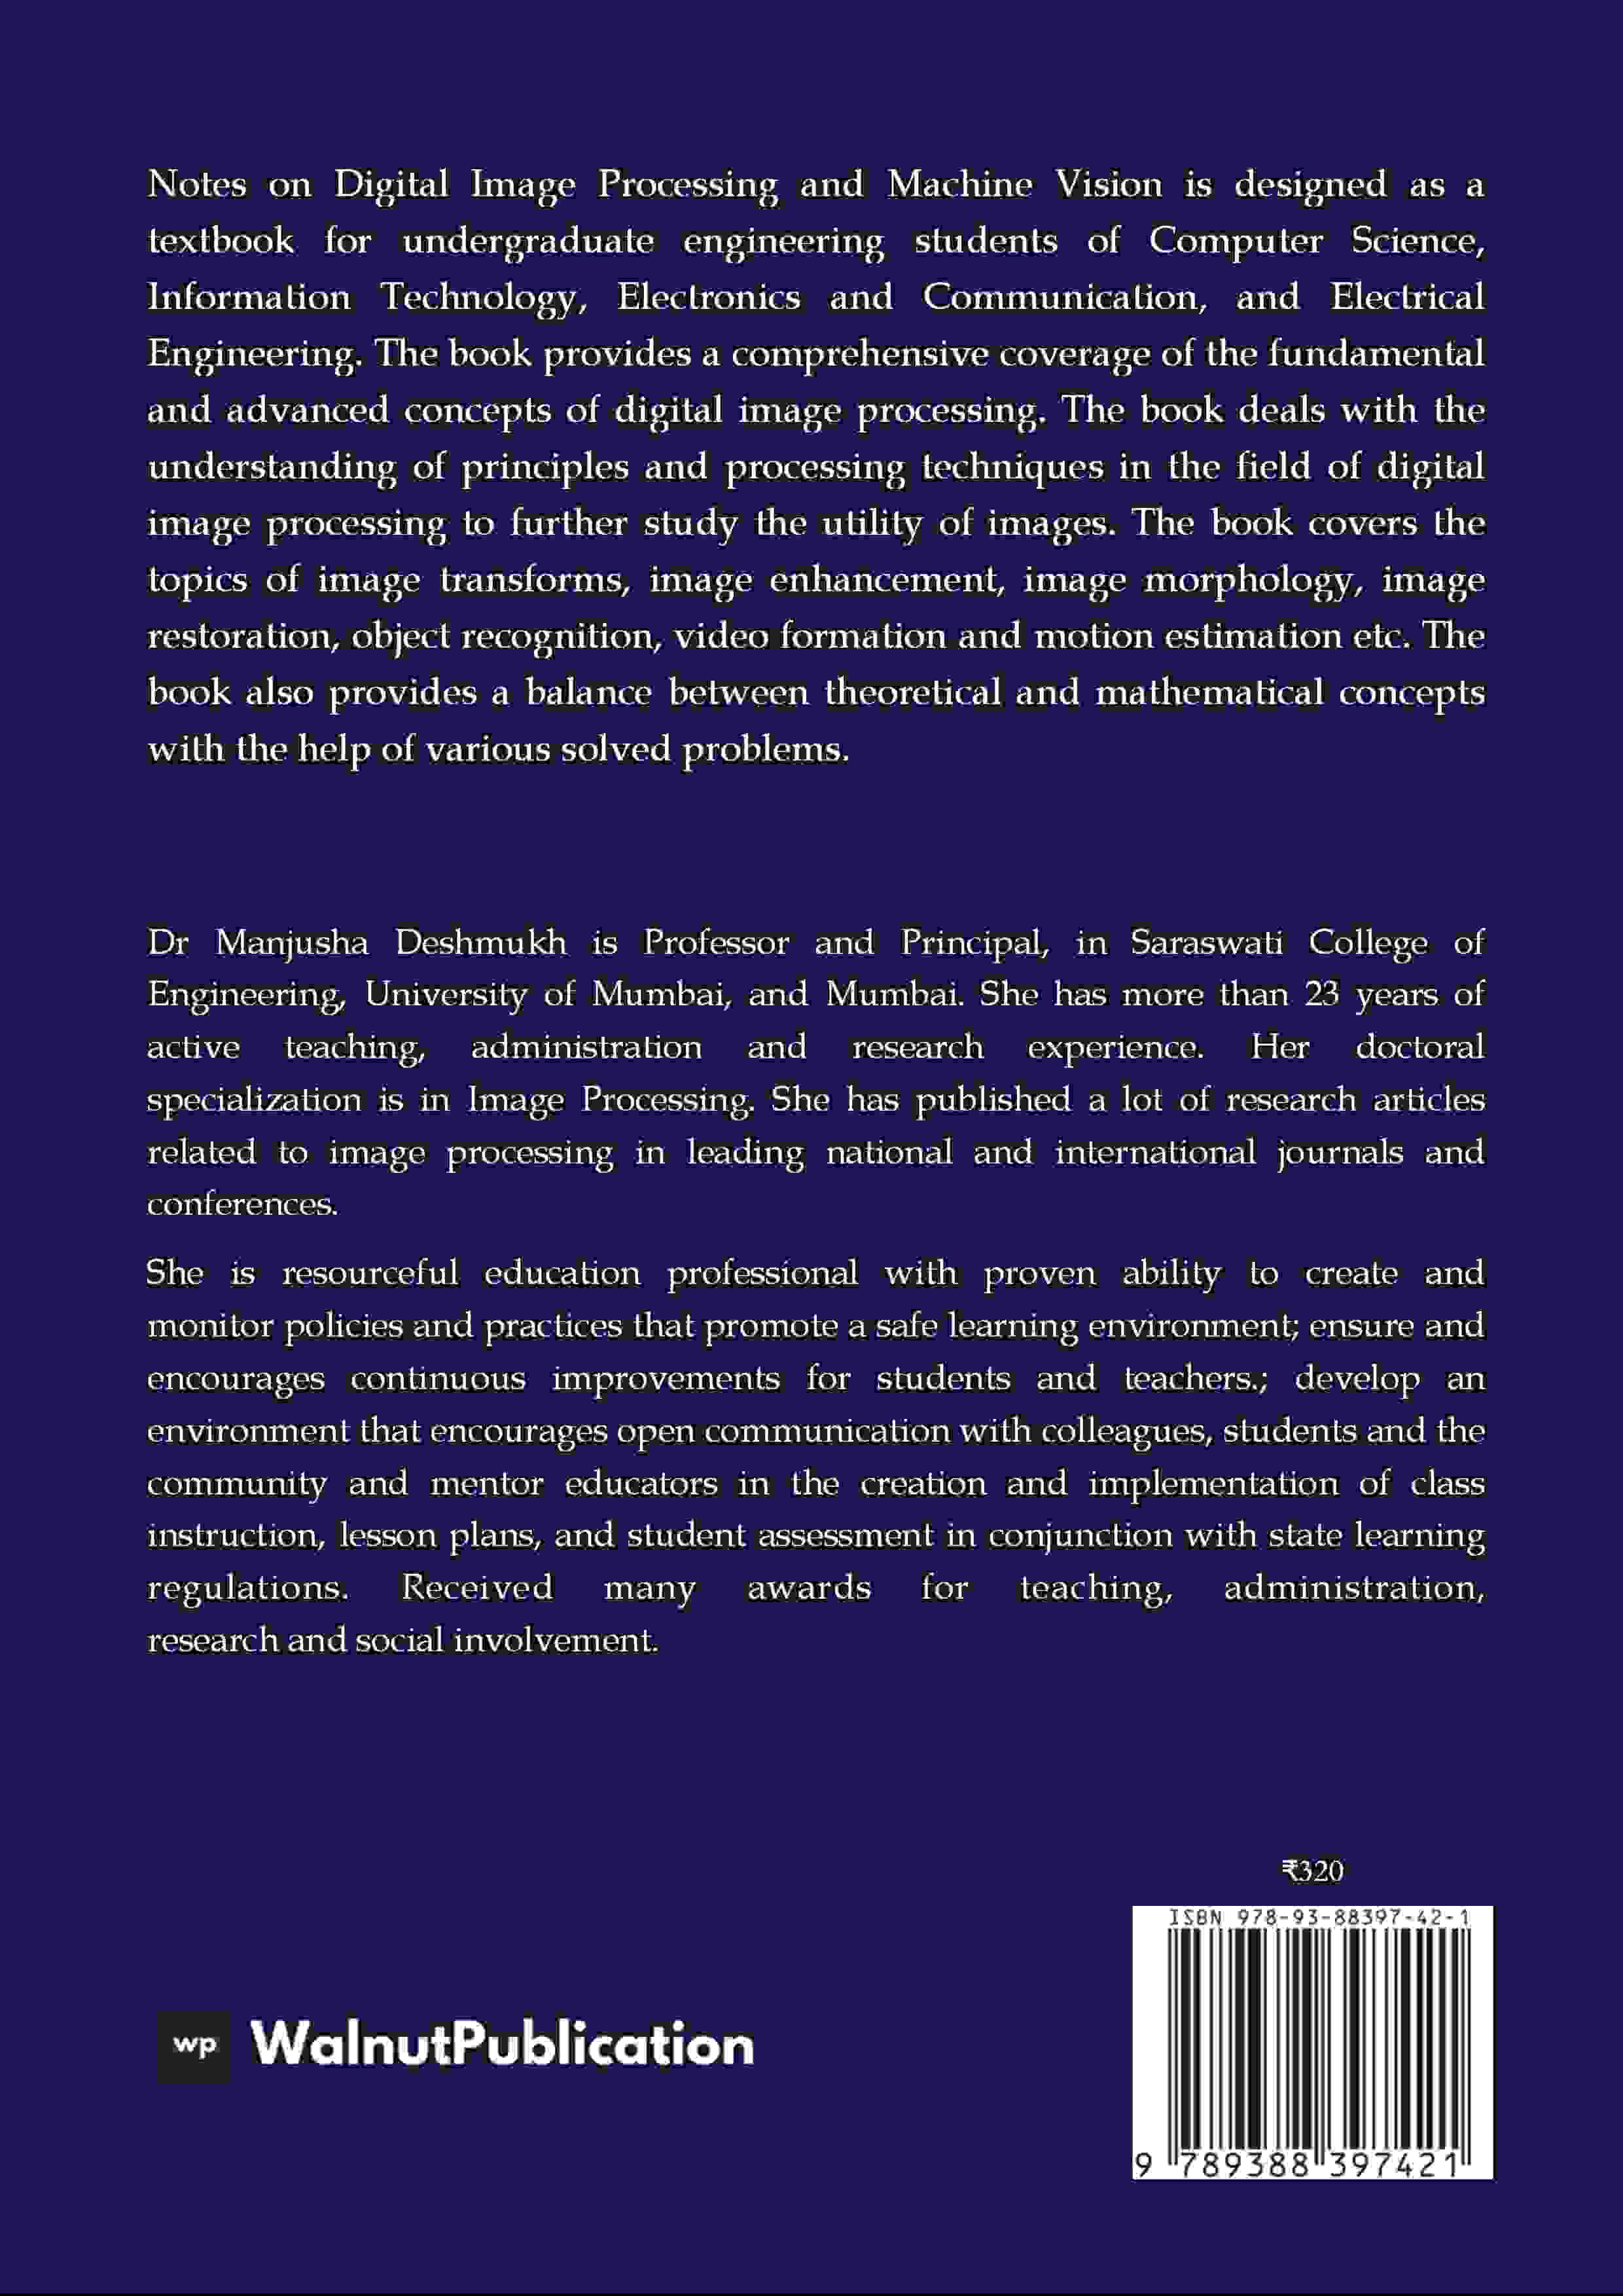 Notes on Digital Image Processing and Machine Vision - Back Cover